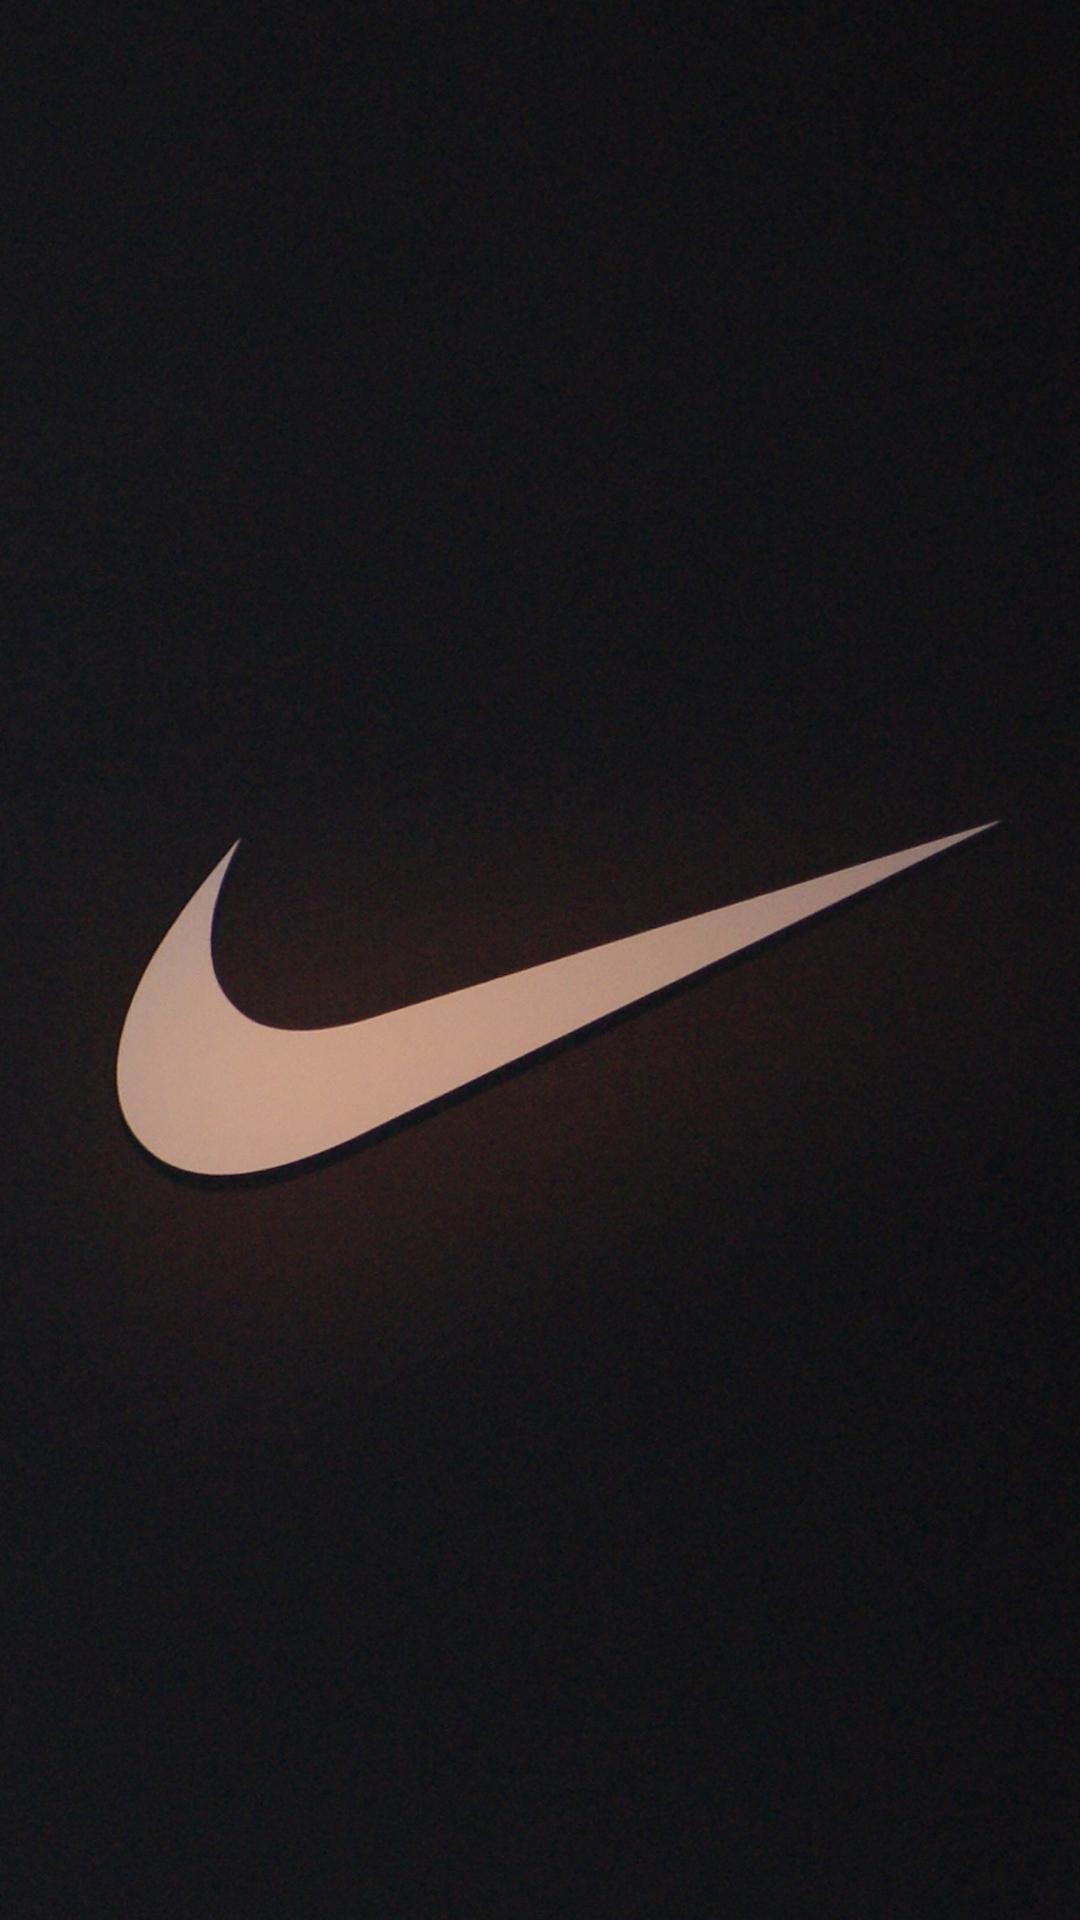 wallpaper.wiki-Nike-Image-HD-for-Iphone-PIC-